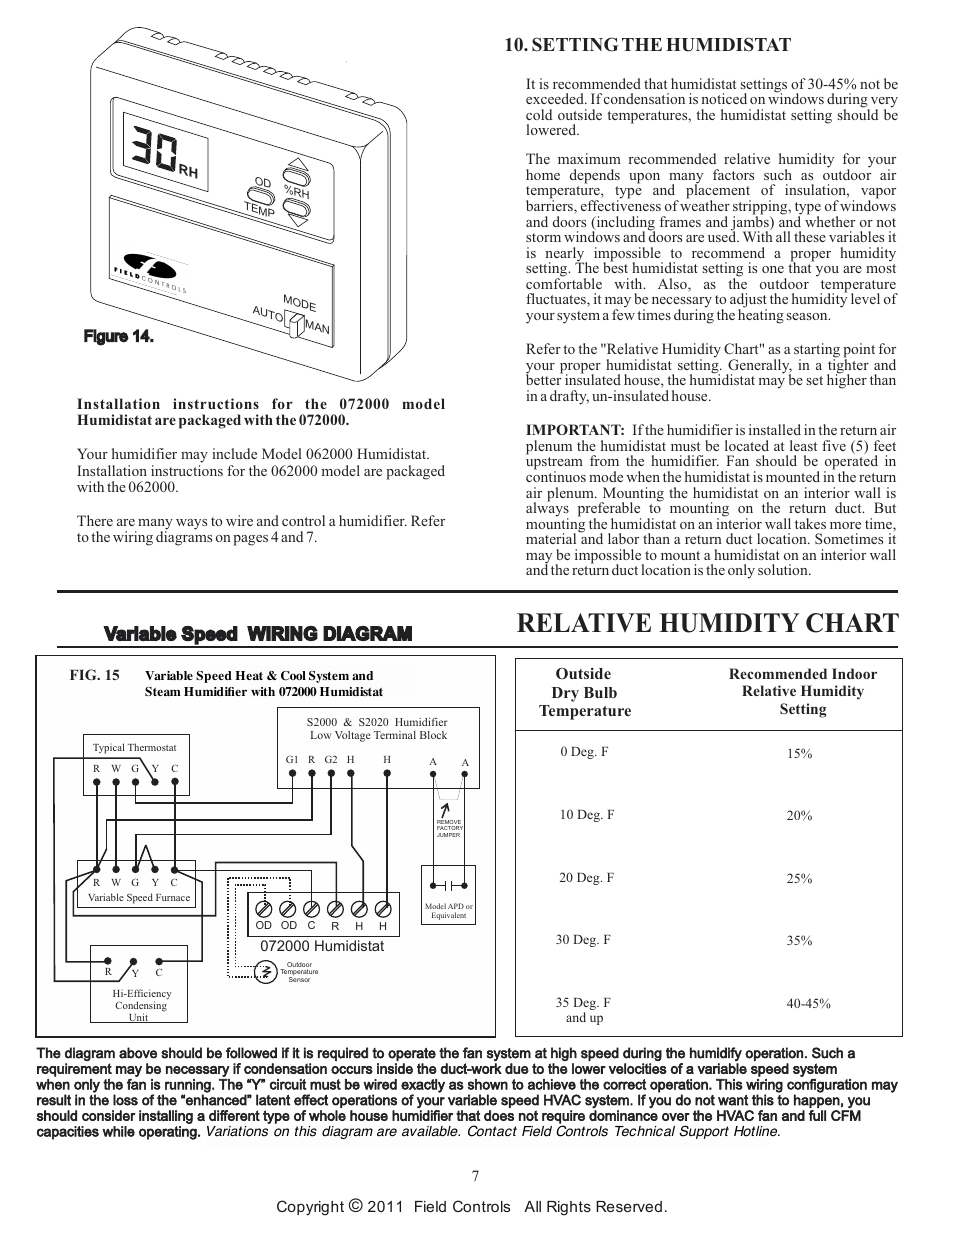 Relative Humidity Chart Setting The Humidistat Variable Sd Wiring Diagram Field Controls Electronic Steam Unit S2000 User Manual Page 7